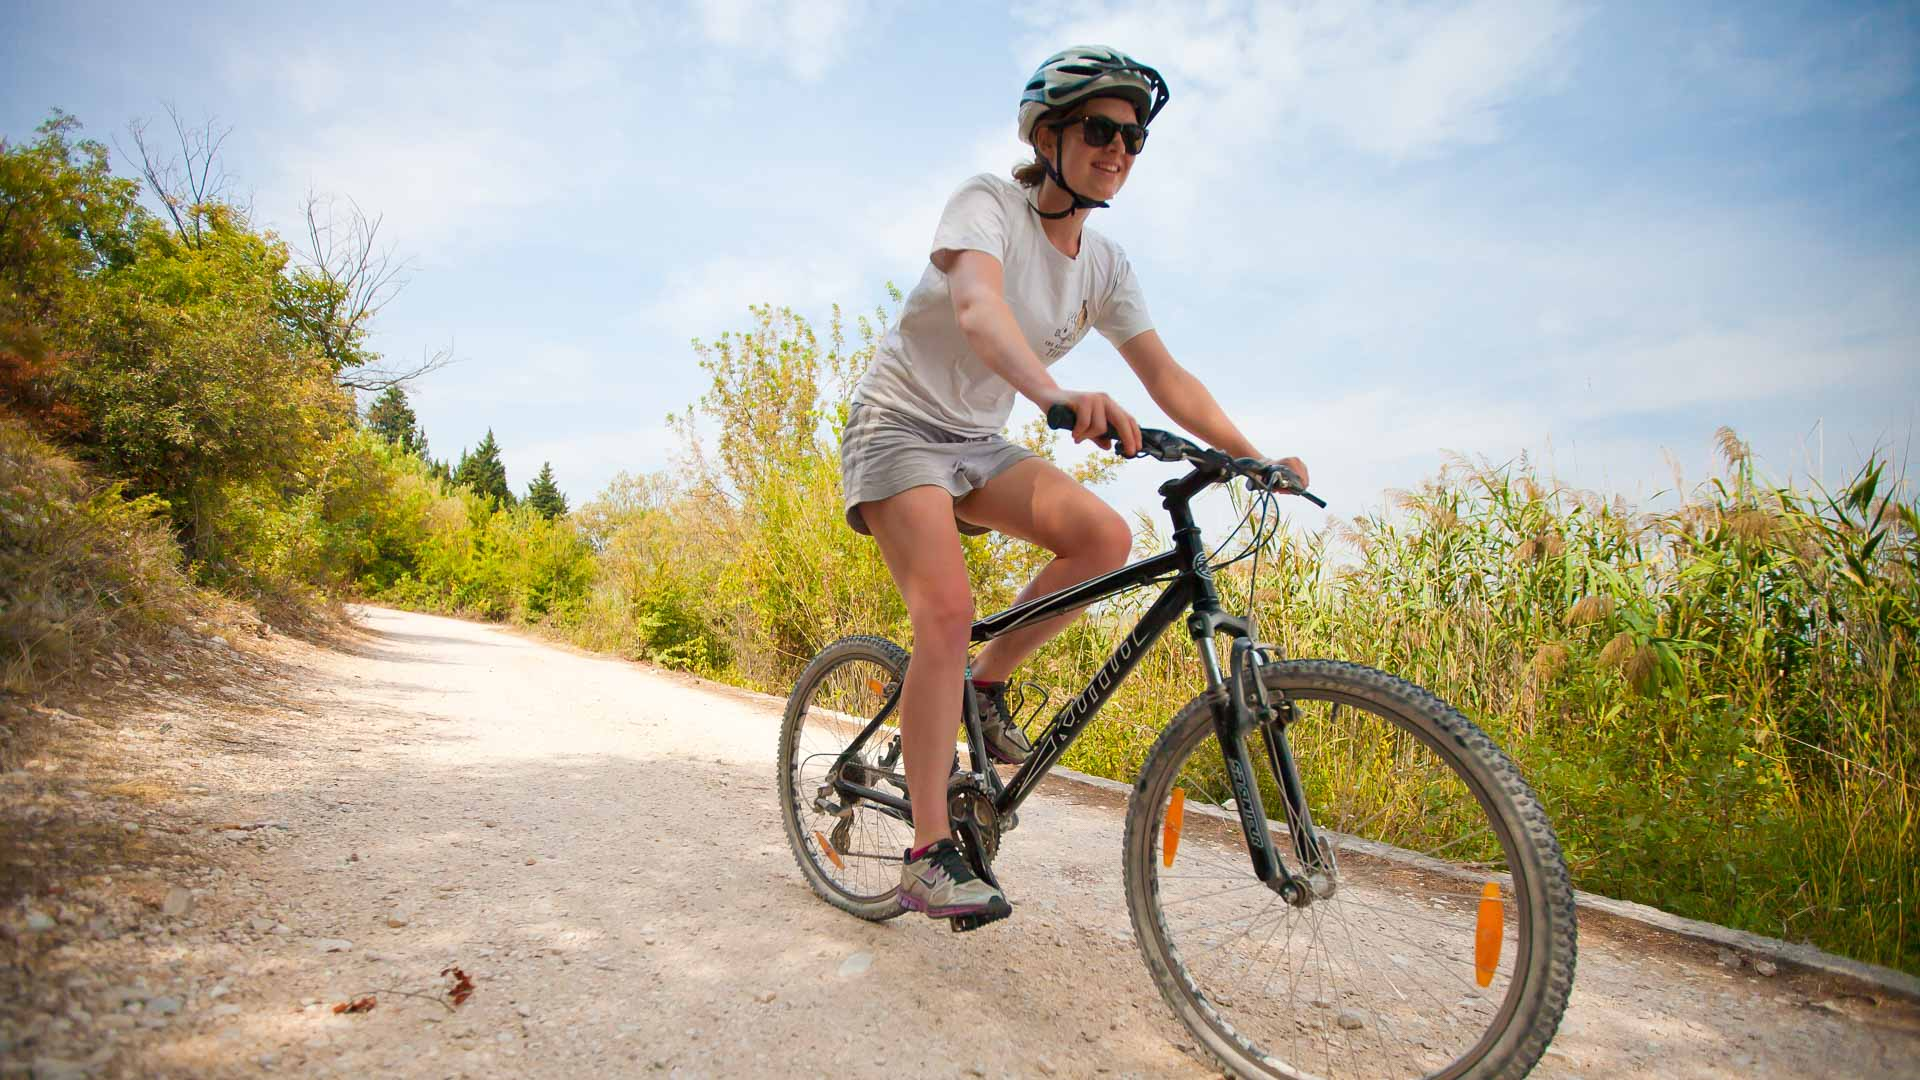 Best Ways to Choose a Perfect Mountain Bike For Your Adventure Mountain Biking